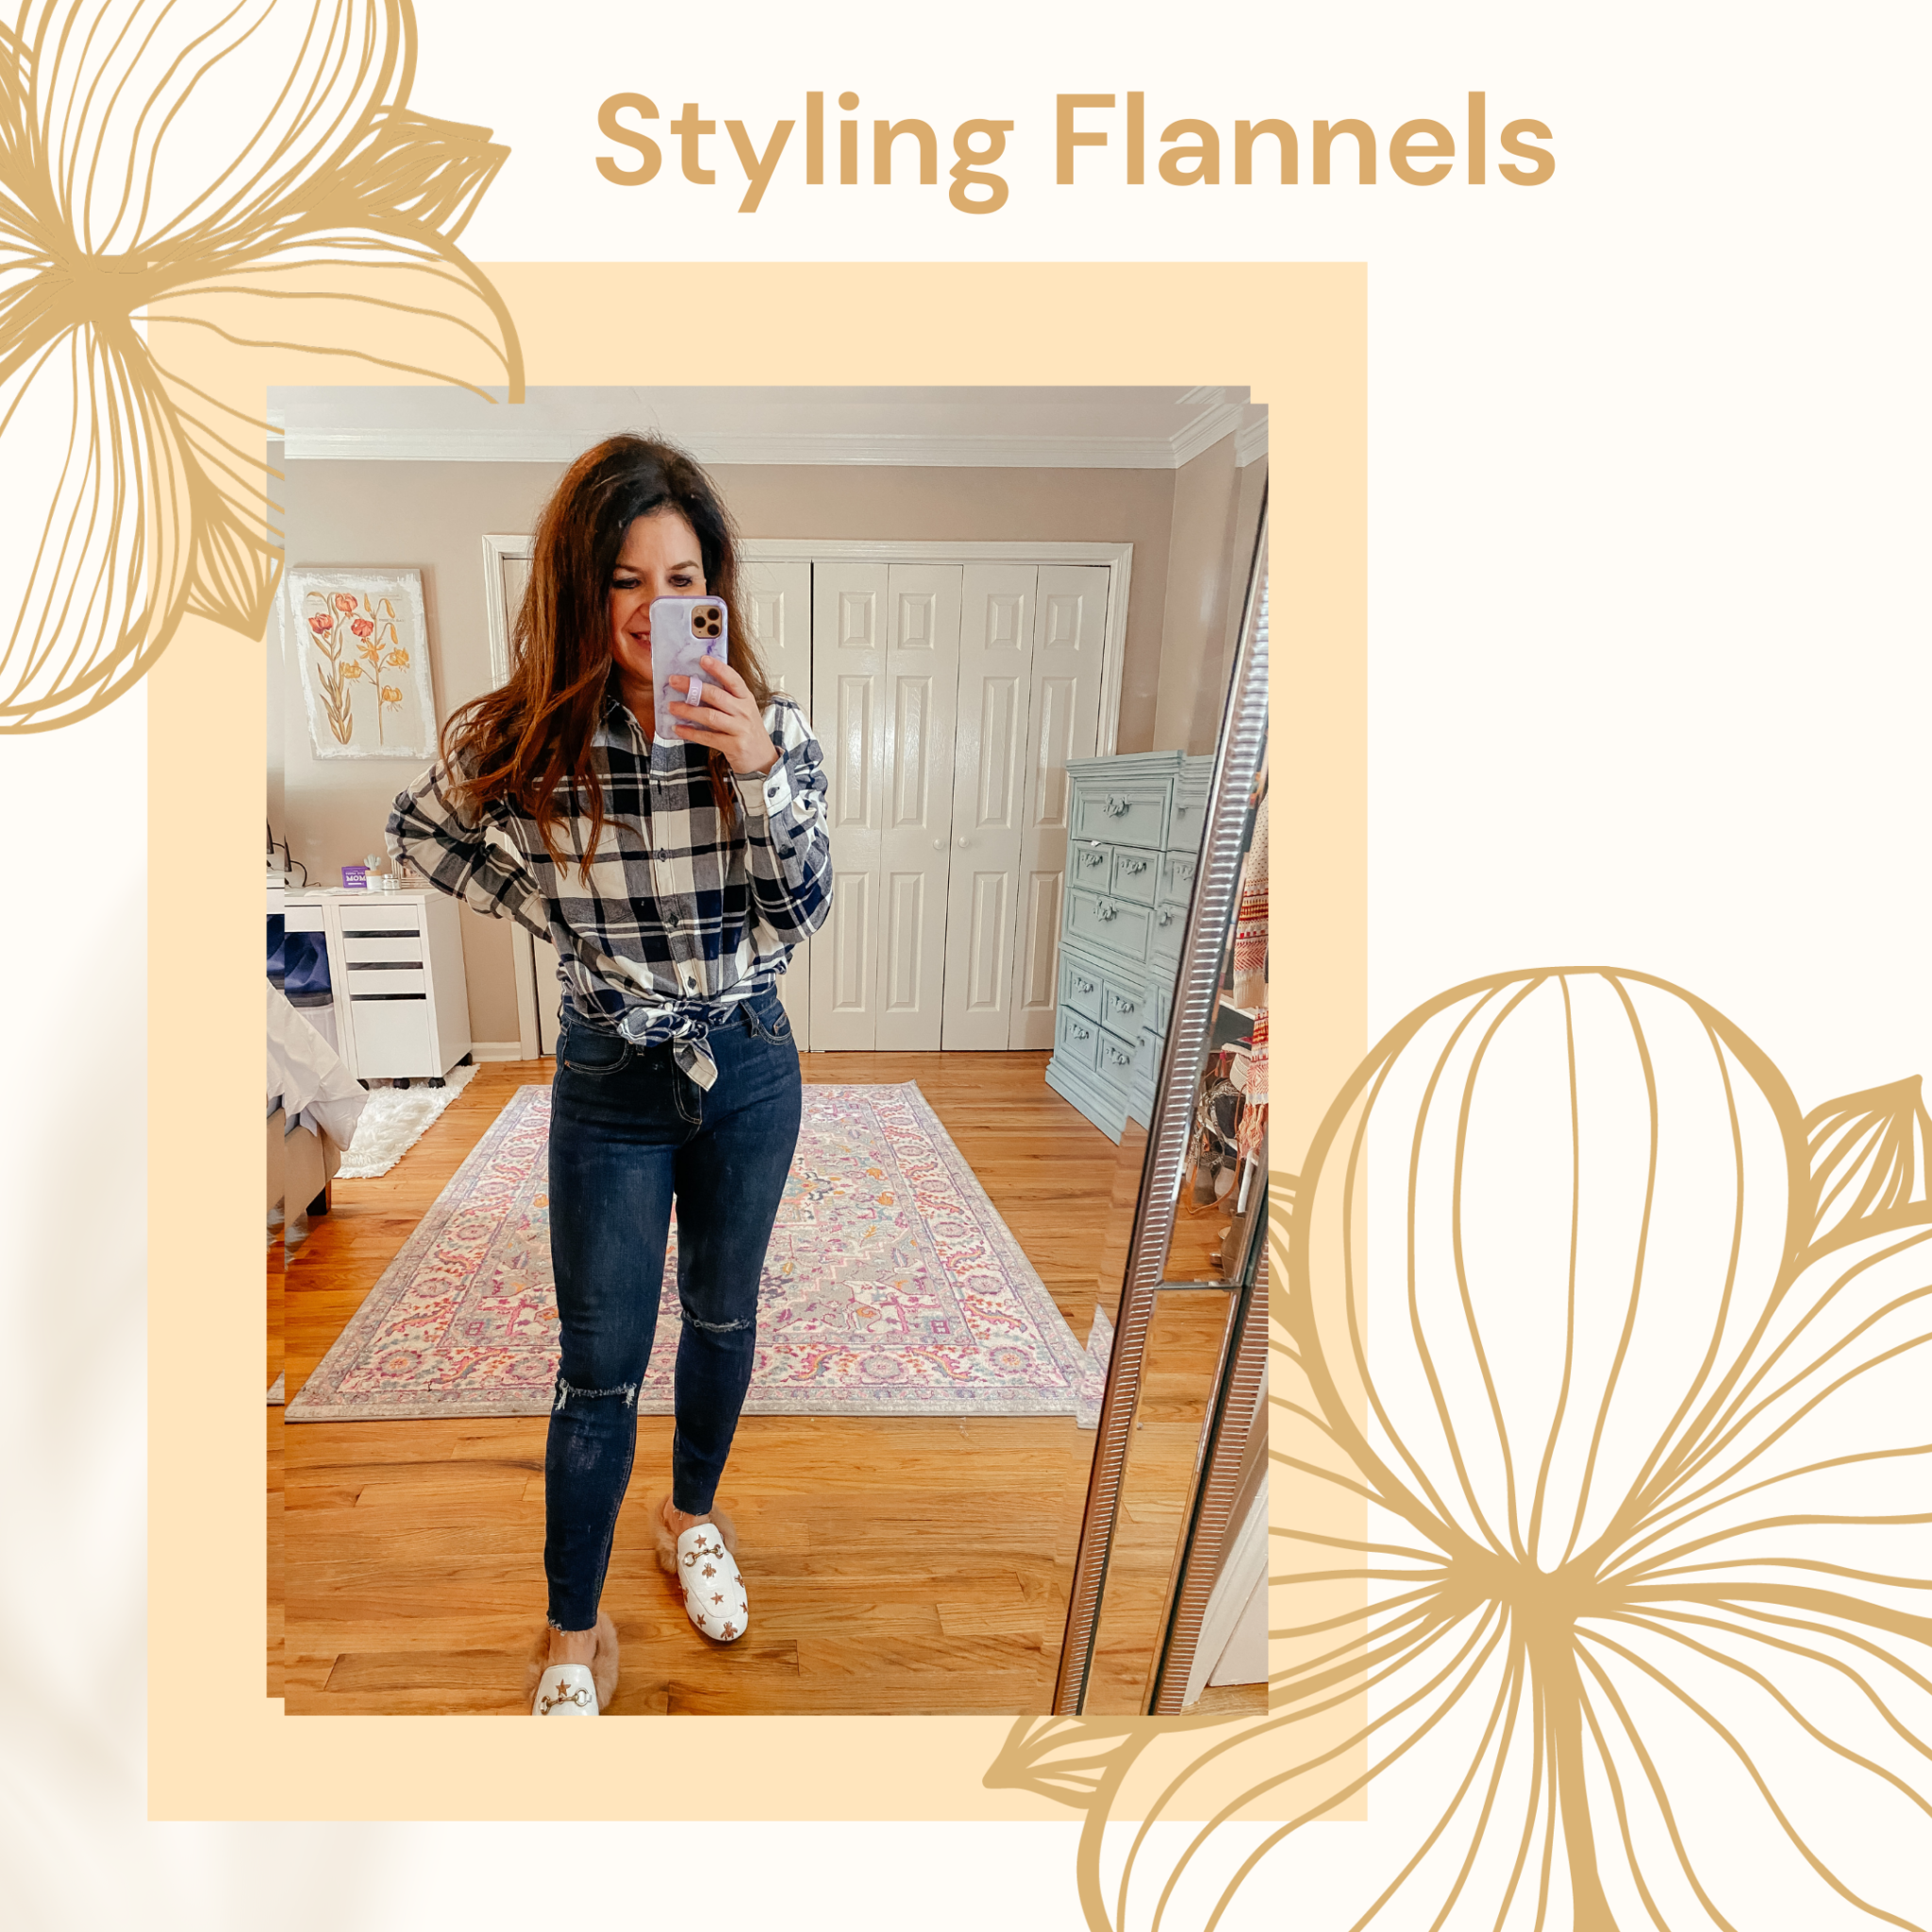 Styling a Flannel